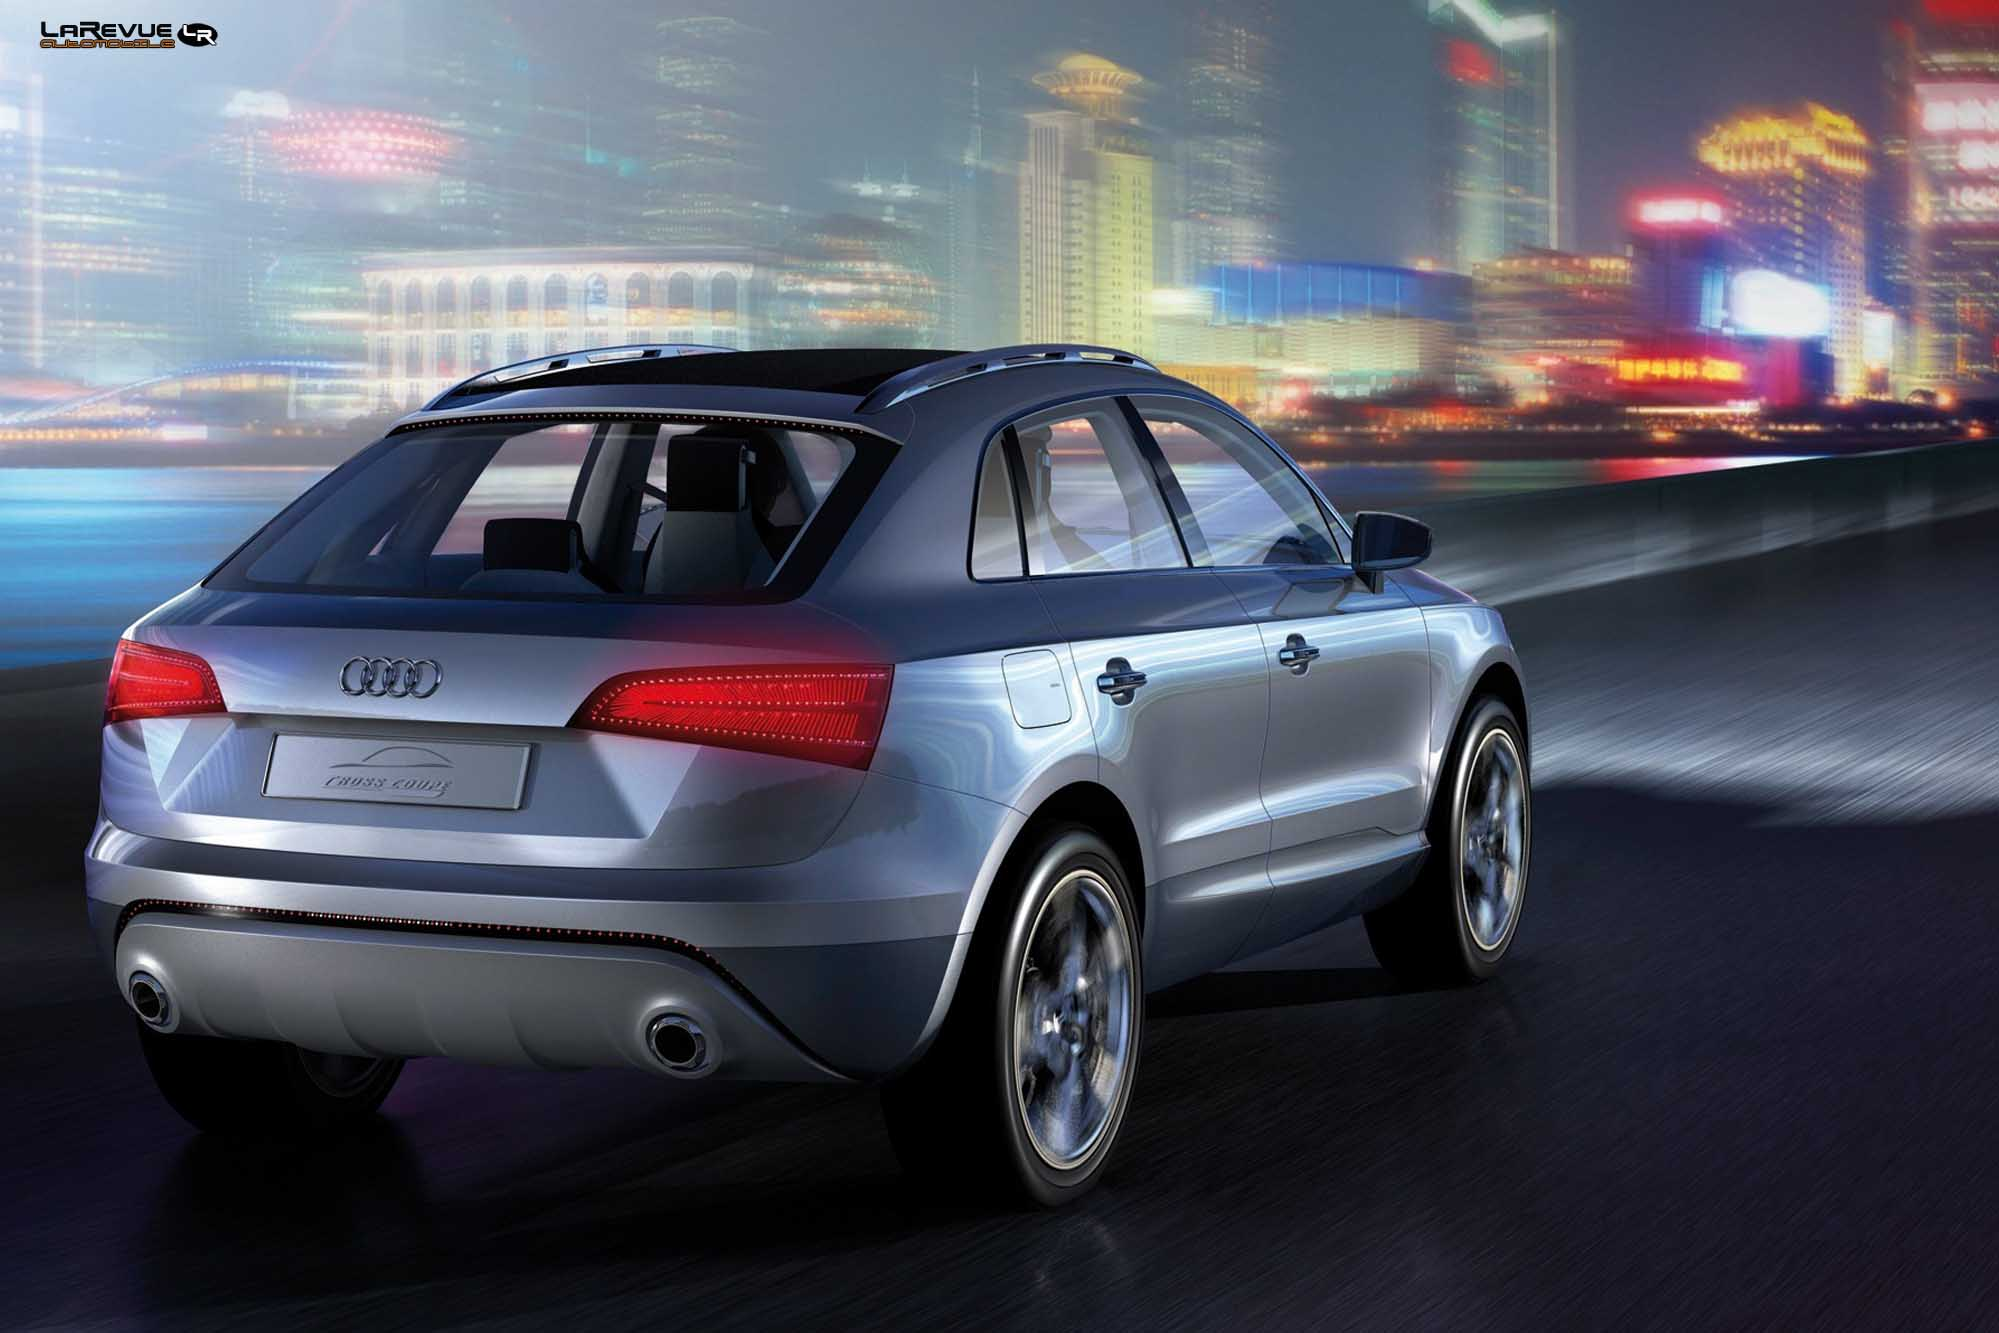 Exterieur_Audi-Cross-Coupe_1